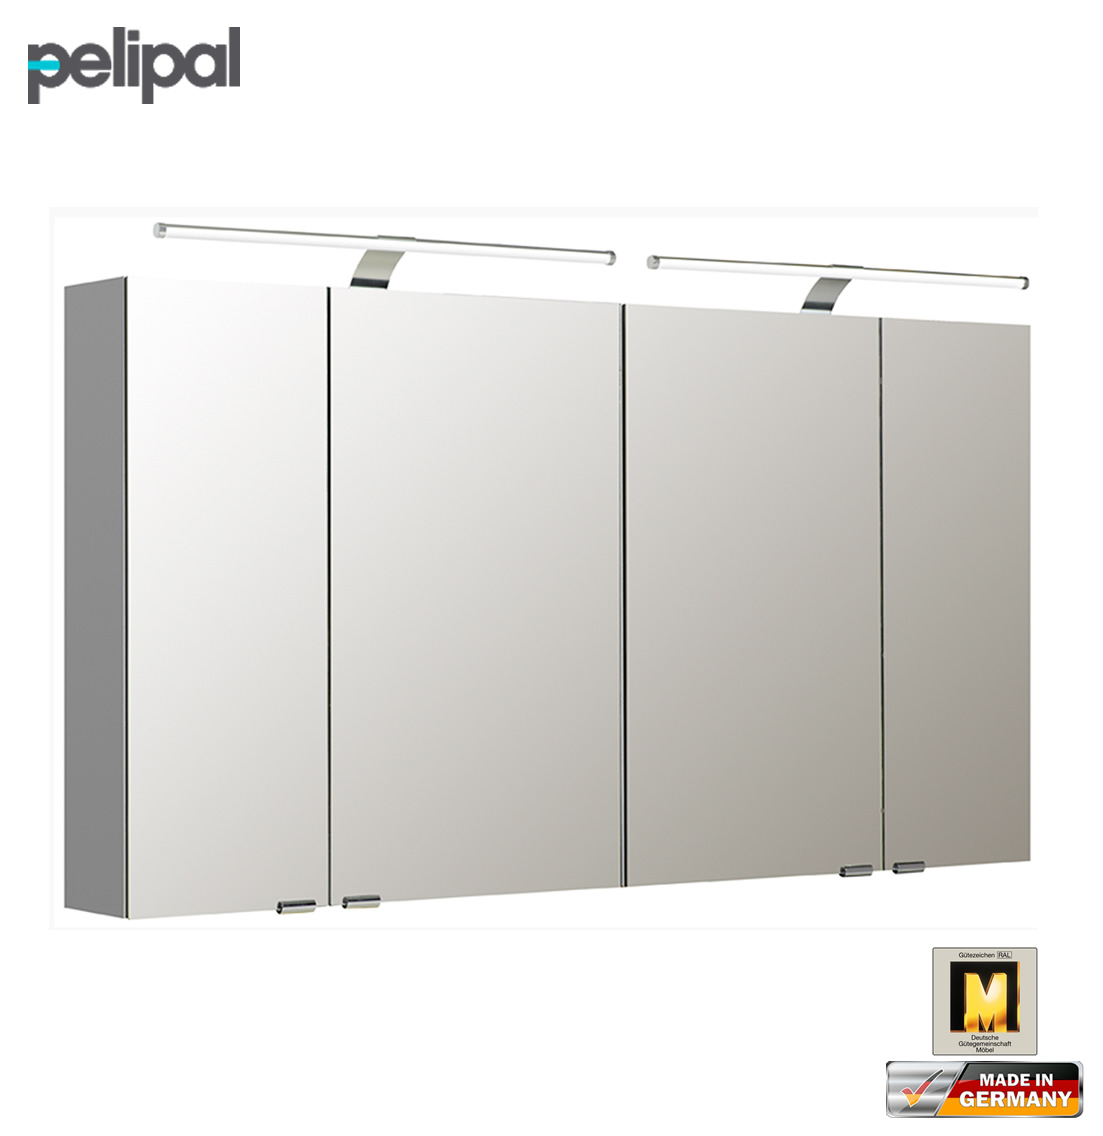 pelipal neutraler spiegelschrank 130 cm mit led aufsatzleuchten s5 spsd 24 impuls home. Black Bedroom Furniture Sets. Home Design Ideas